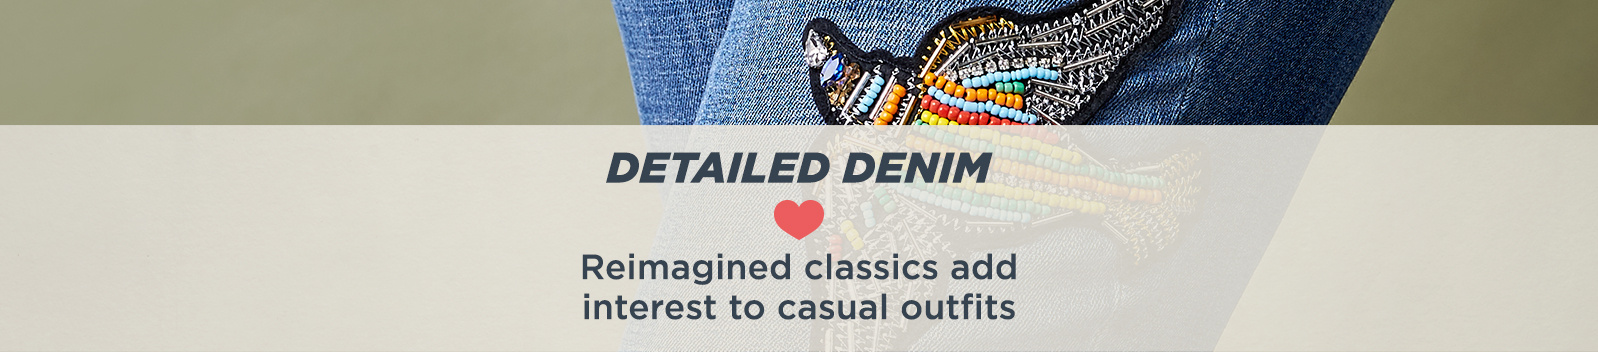 Detailed Denim - Reimagined classics add interest to casual outfits